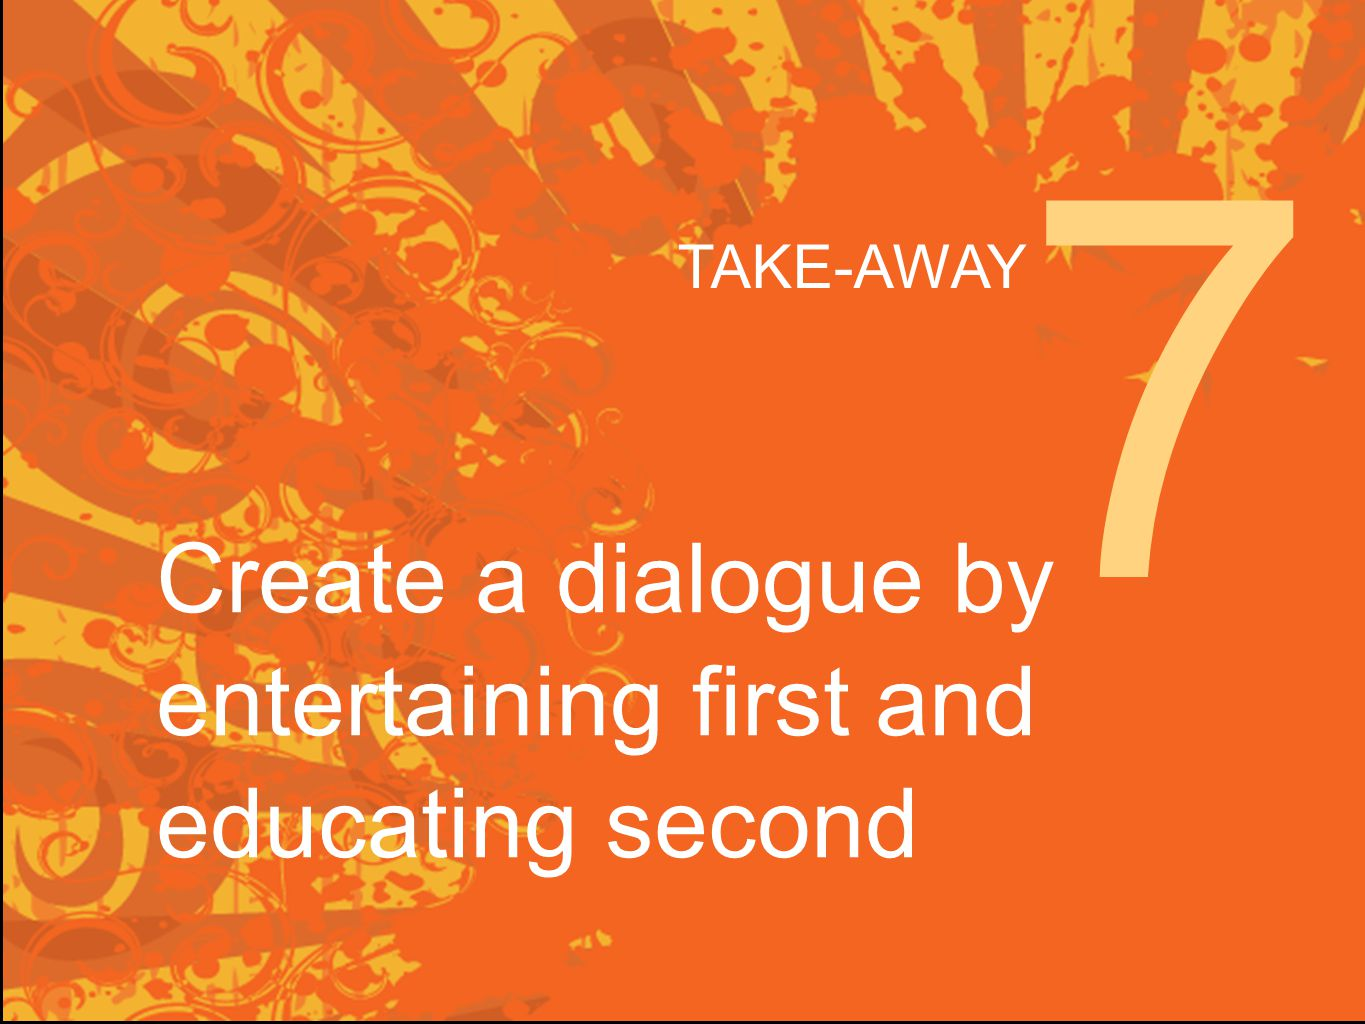 Create a dialogue by entertaining first and educating second 7 TAKE-AWAY